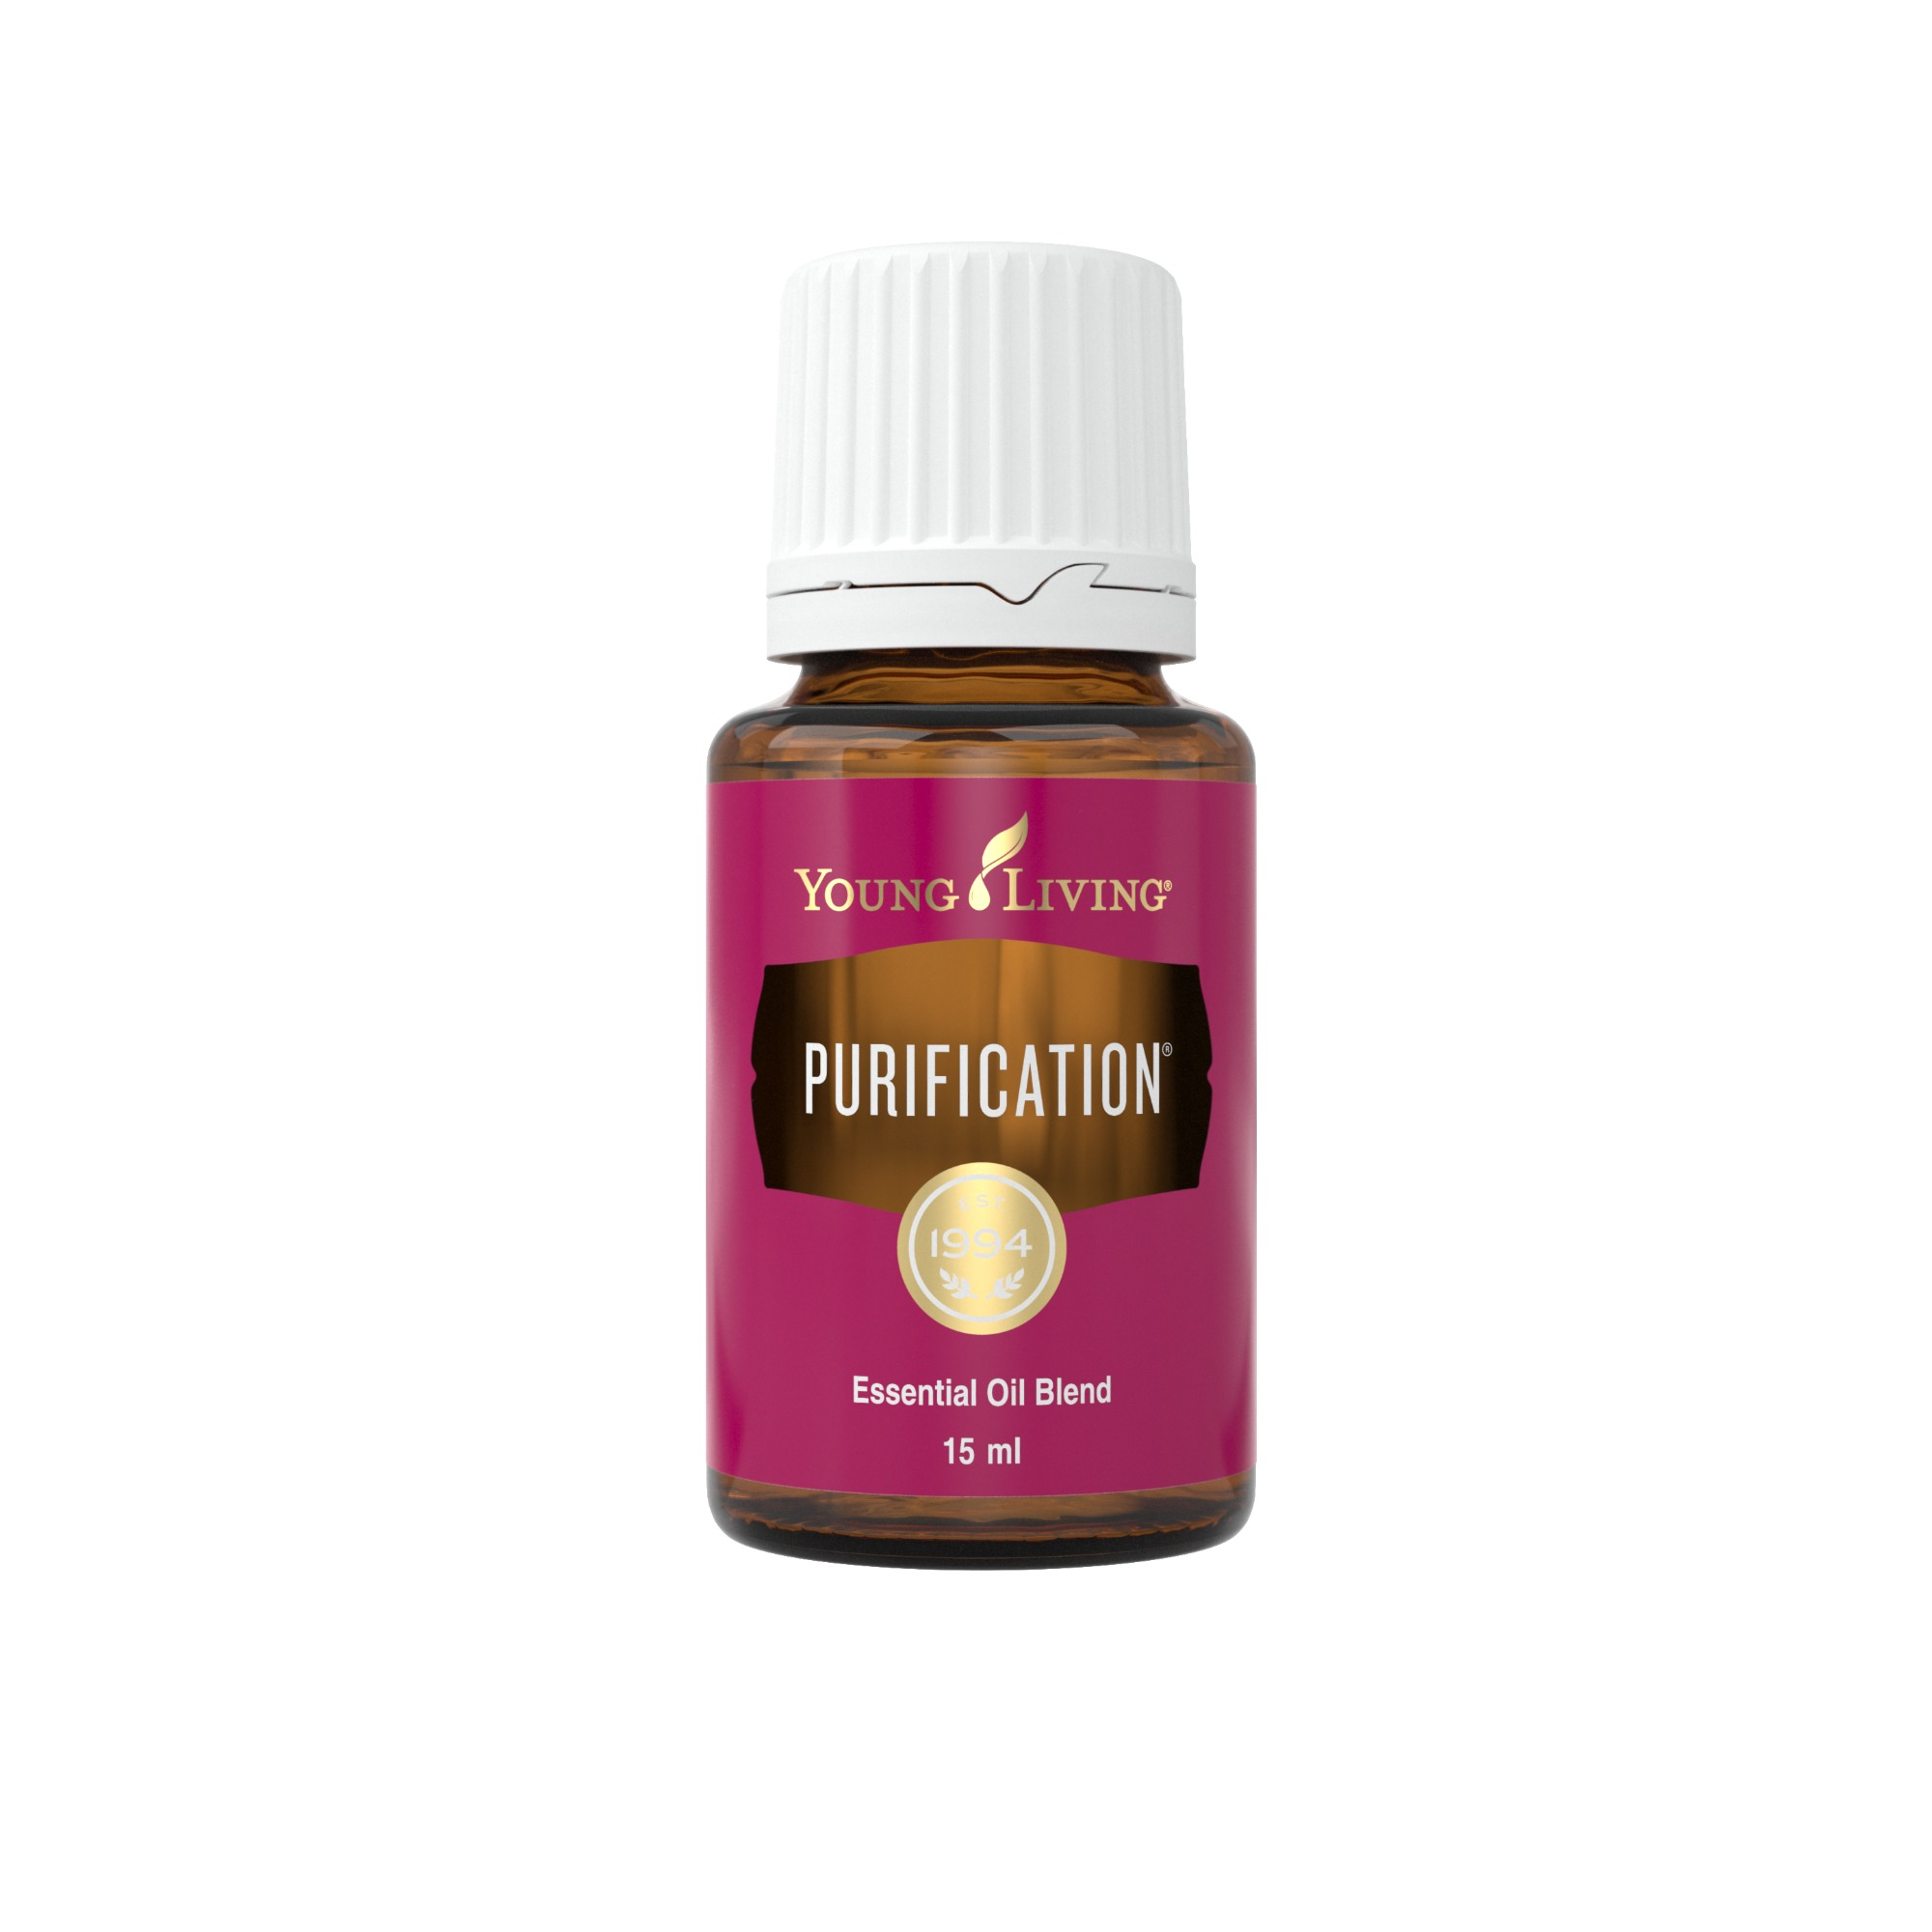 """PURIFICATION ESSENTIAL OIL    This oil is the most popular for eliminating """"stanky"""" odors, and with being in the outdoors, stinky odors are bound to happen! Apply drops under your armpits, in your athletic shoes, or in your camping bag as a natural deodorizer.   Click here   to read more extensively on this product."""